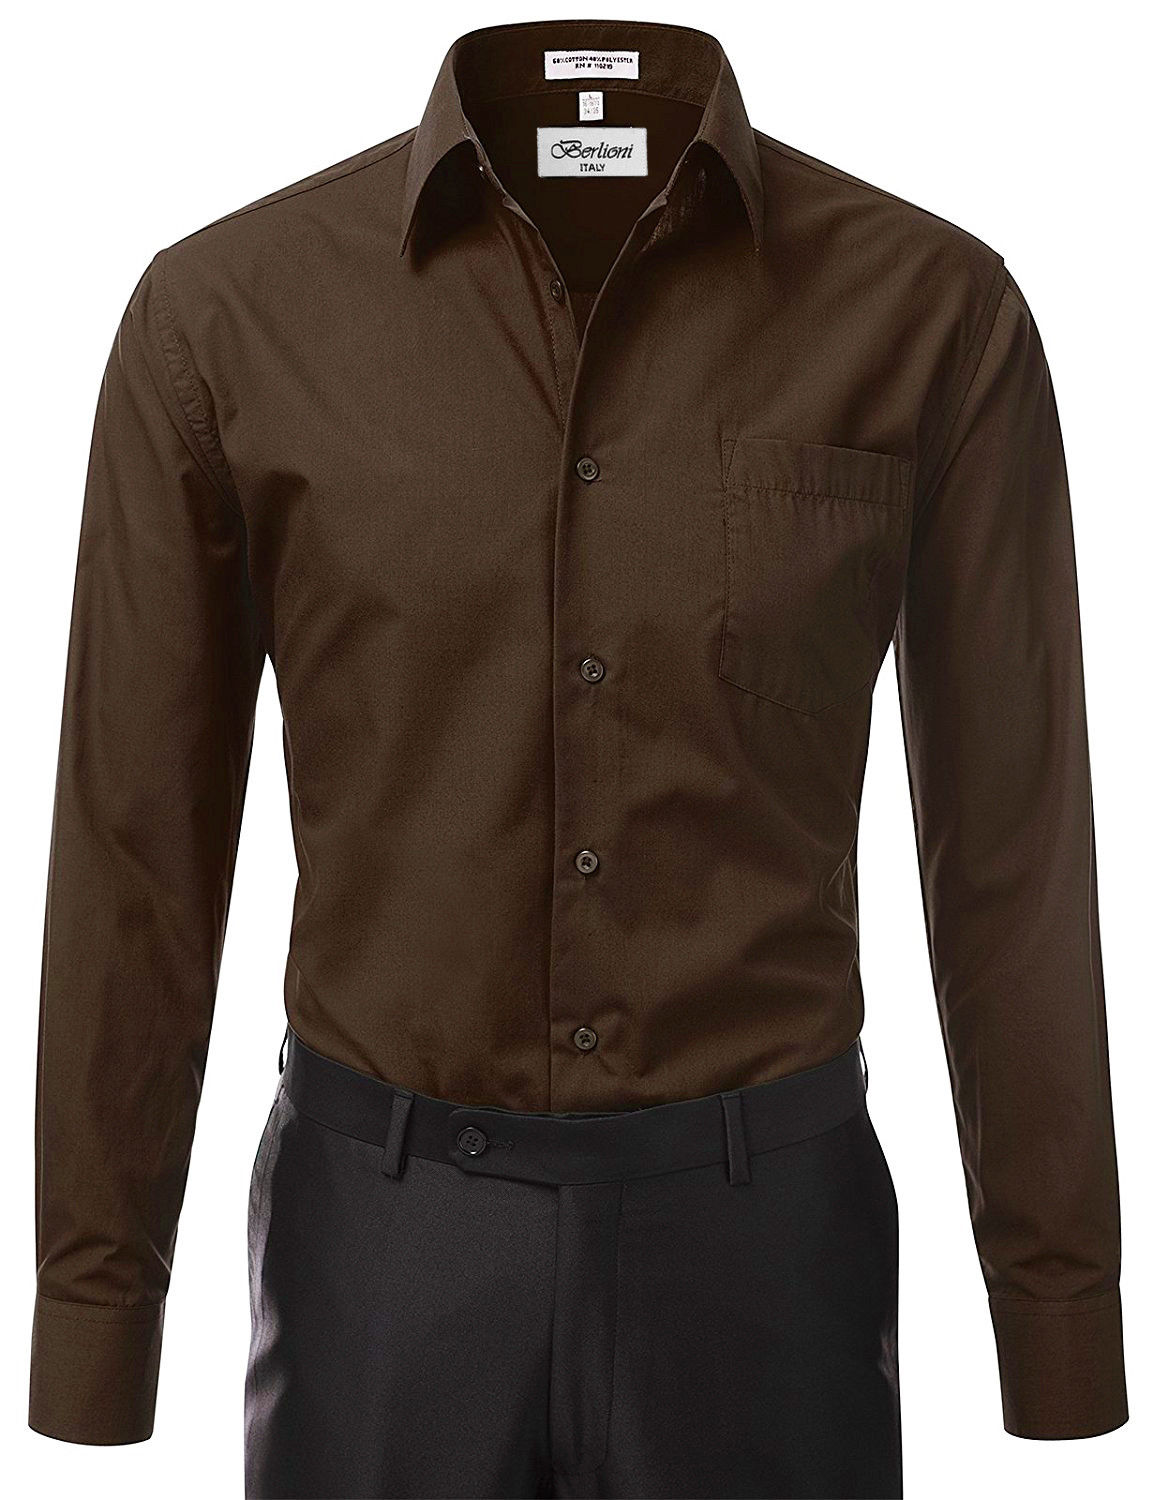 Berlioni-Italy-Men-039-s-Premium-Classic-French-Convertible-Cuff-Solid-Dress-Shirt thumbnail 52